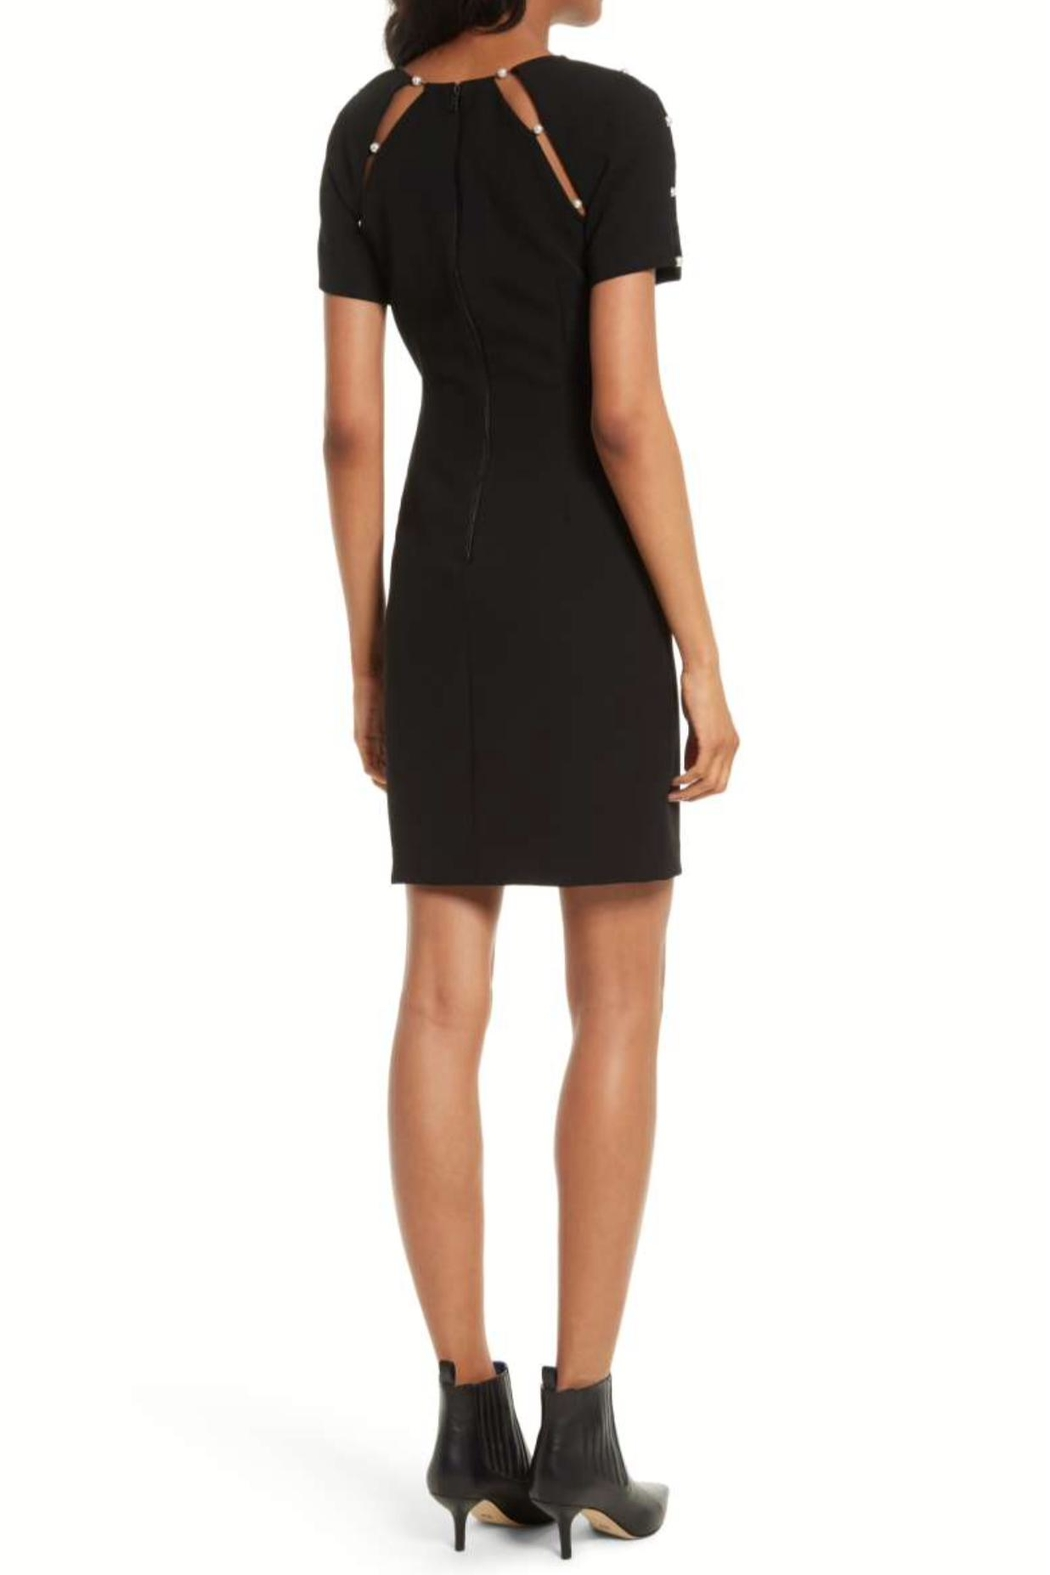 Alice + Olivia Kristiana Embellished Dress - Front Full Image